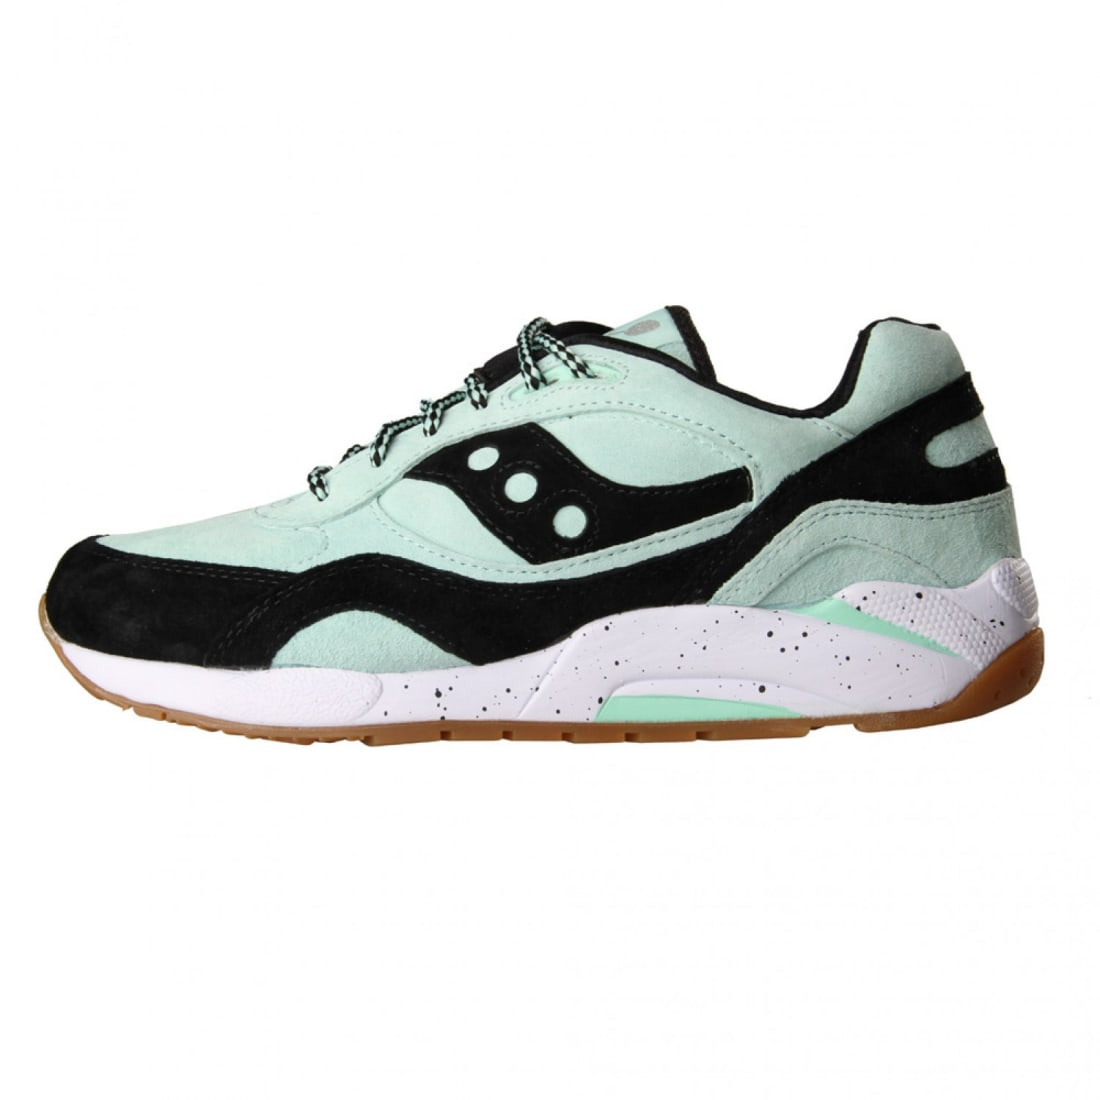 Saucony G9 Shadow 6